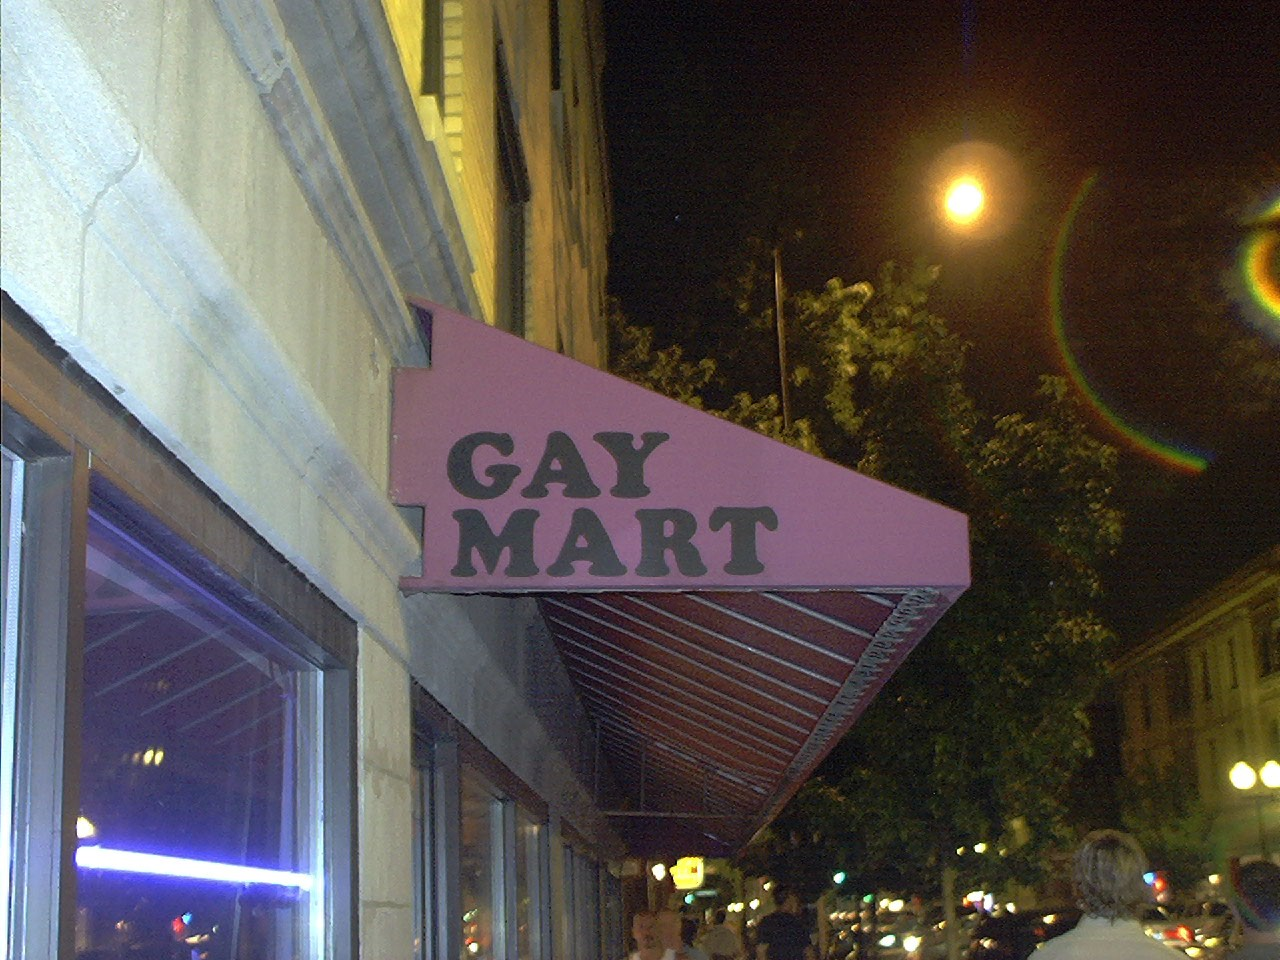 Among the businesses we encountered were Gay Mart, ...